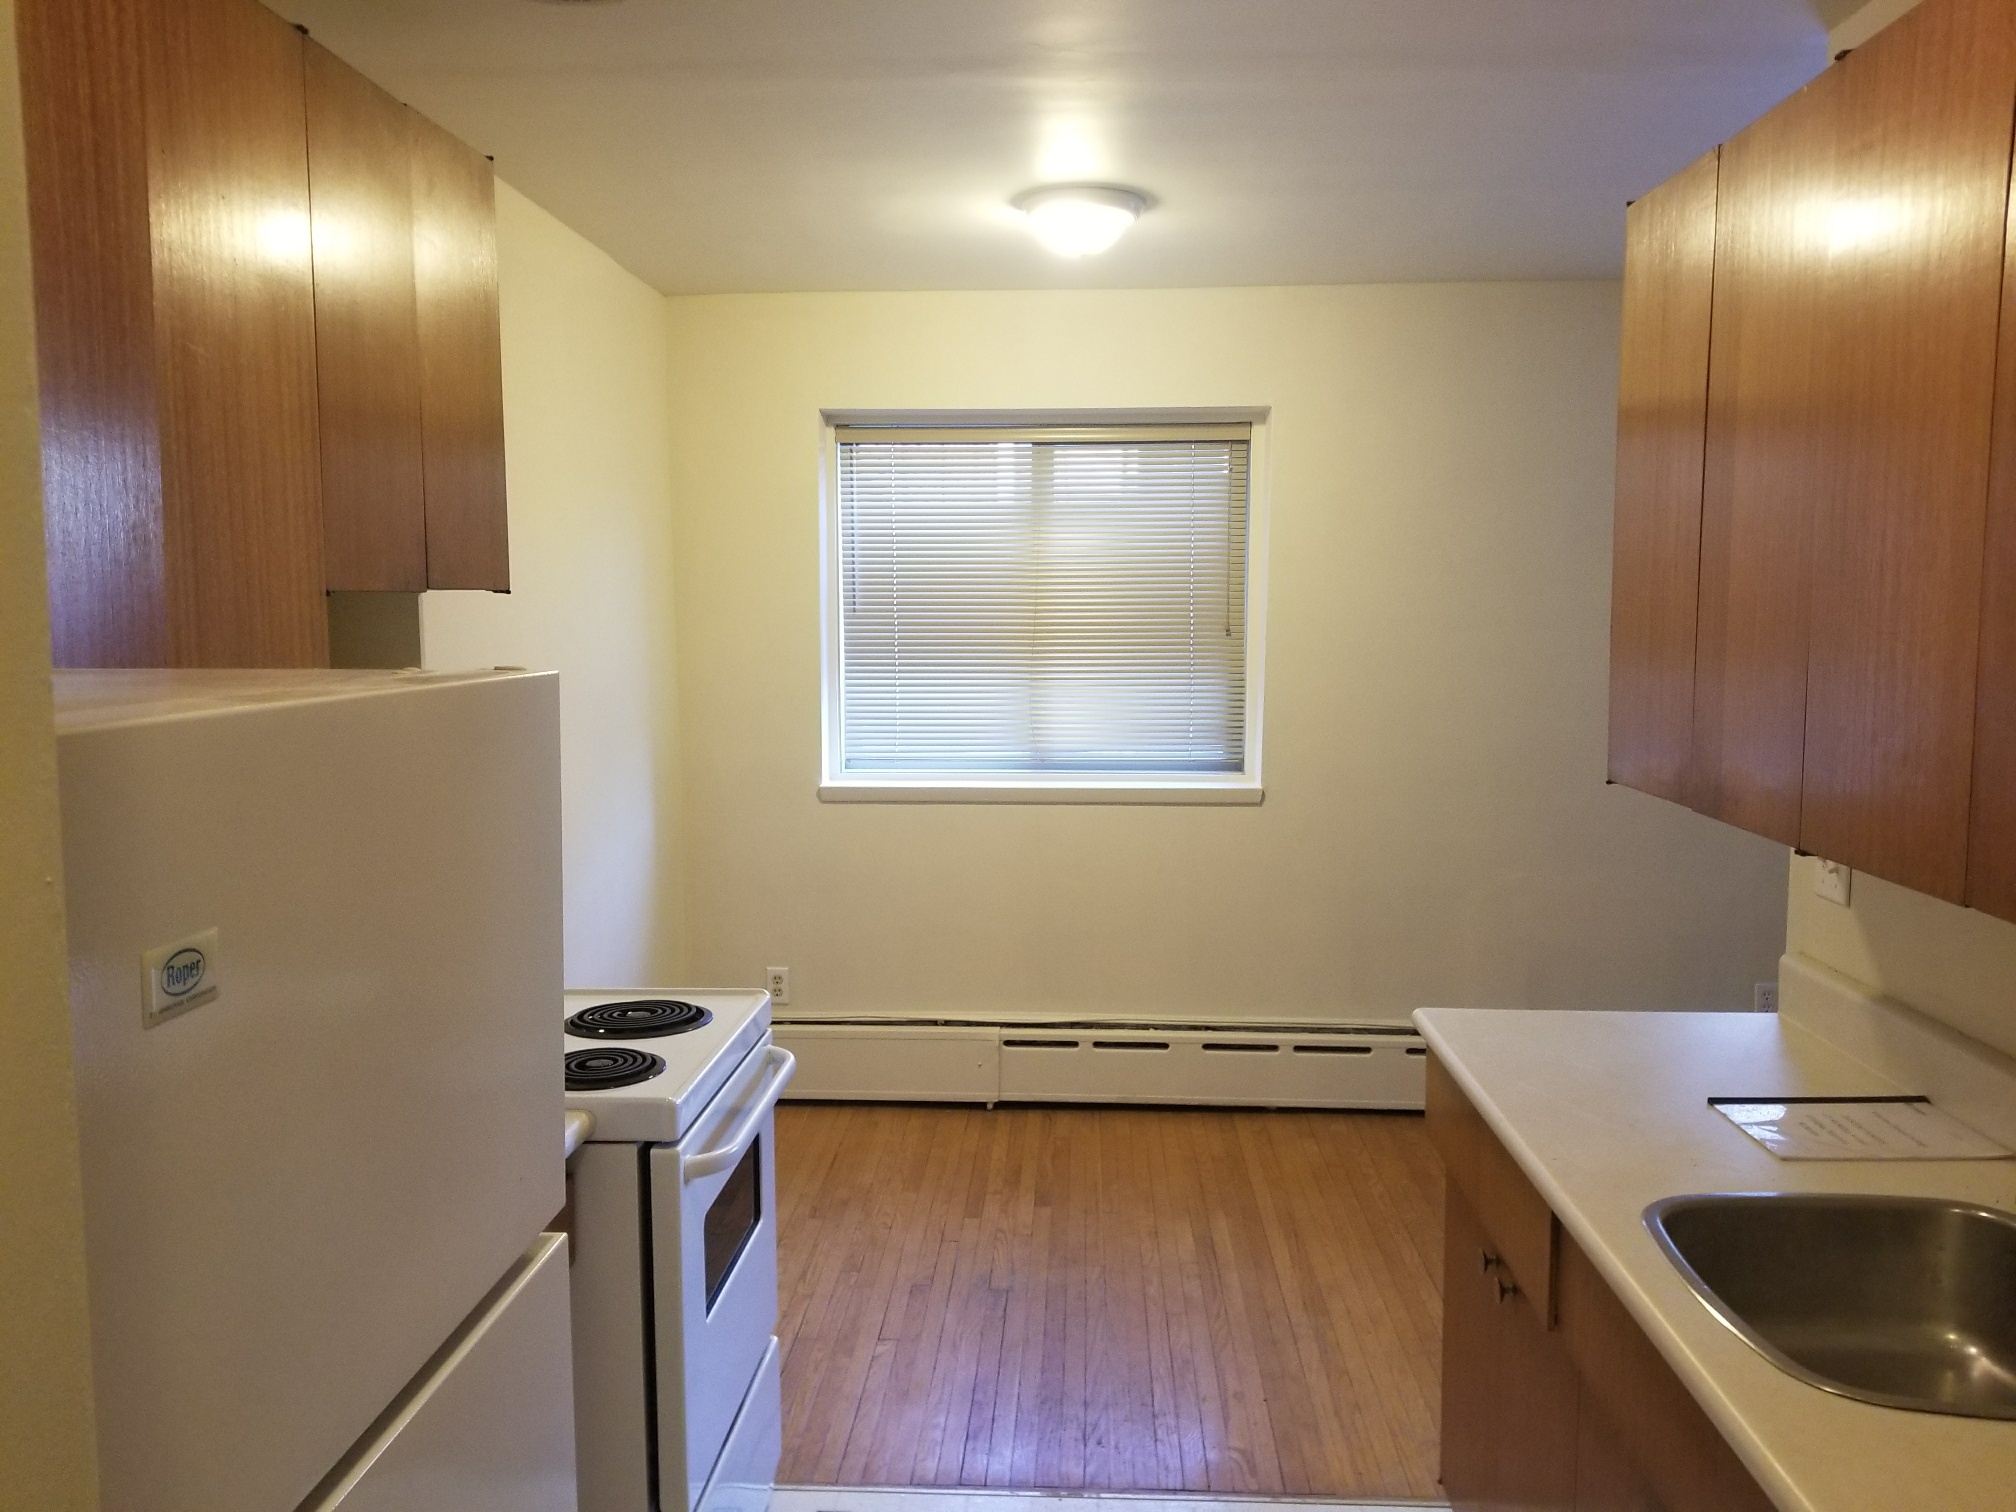 Towers Realty Group - Crescent Towers - 671 McMillan Ave - Kitchen 1